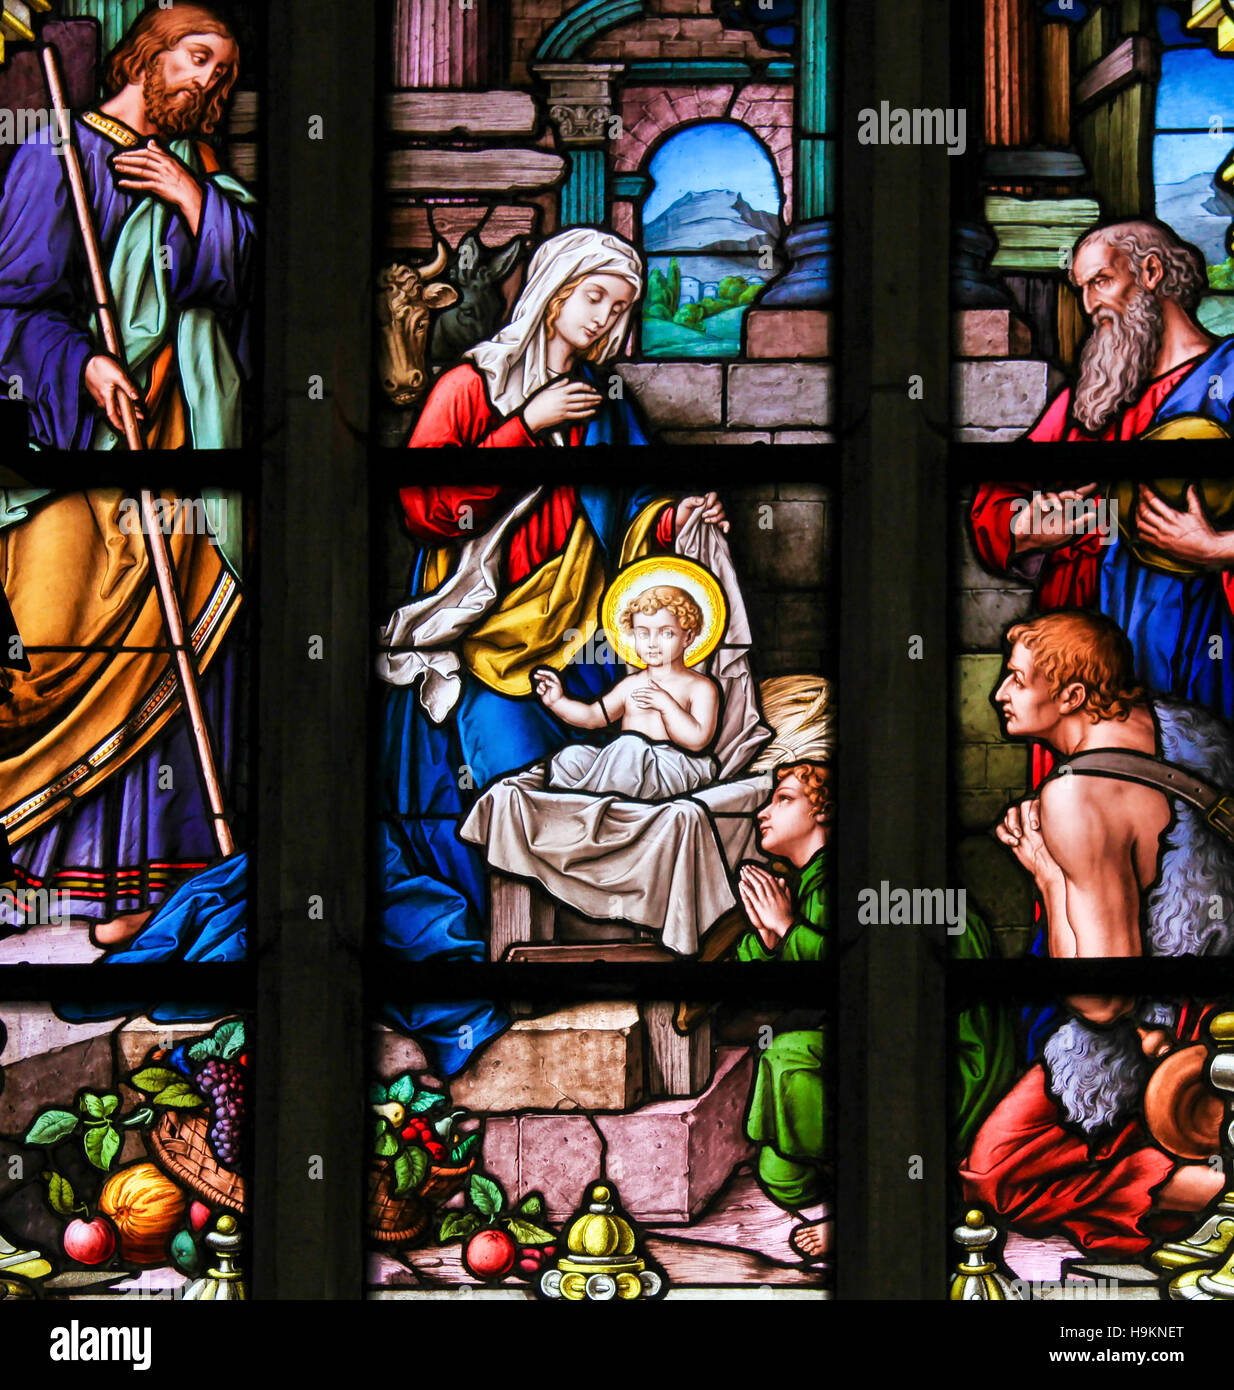 Nativity Scene at Christmas, stained glass window in Saint James church of Stockholm, Sweden. Stock Photo